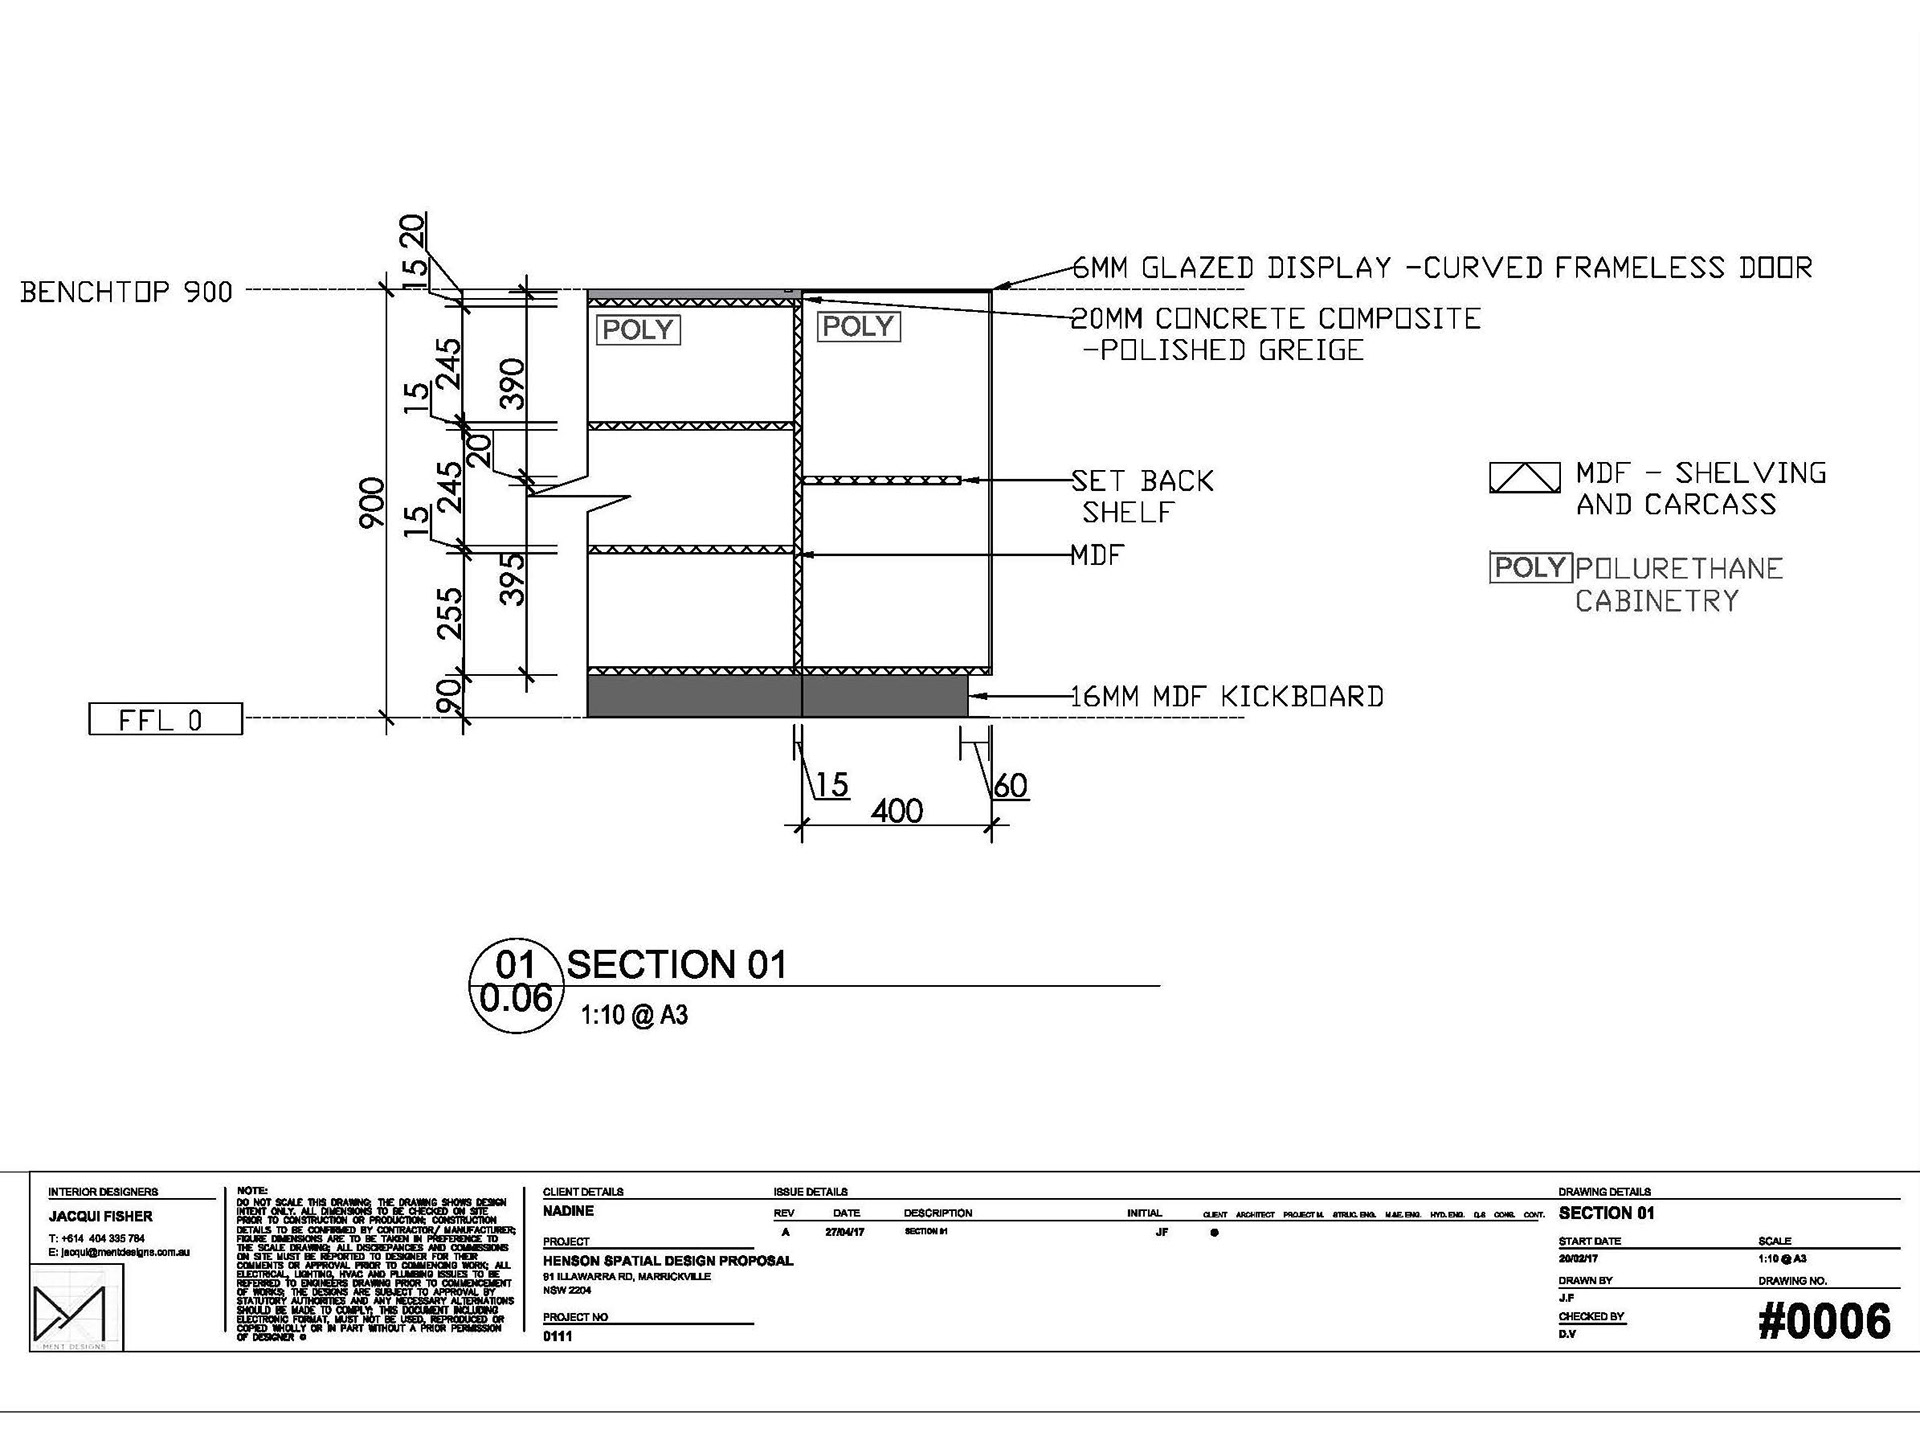 Ment Designs The Local Project 0 60 Counter Circuit Diagram Then Propose A Spatial Design Solution For New Front And Pos Area Please Note This Is Conceptual Only Was Not Carried Out Within